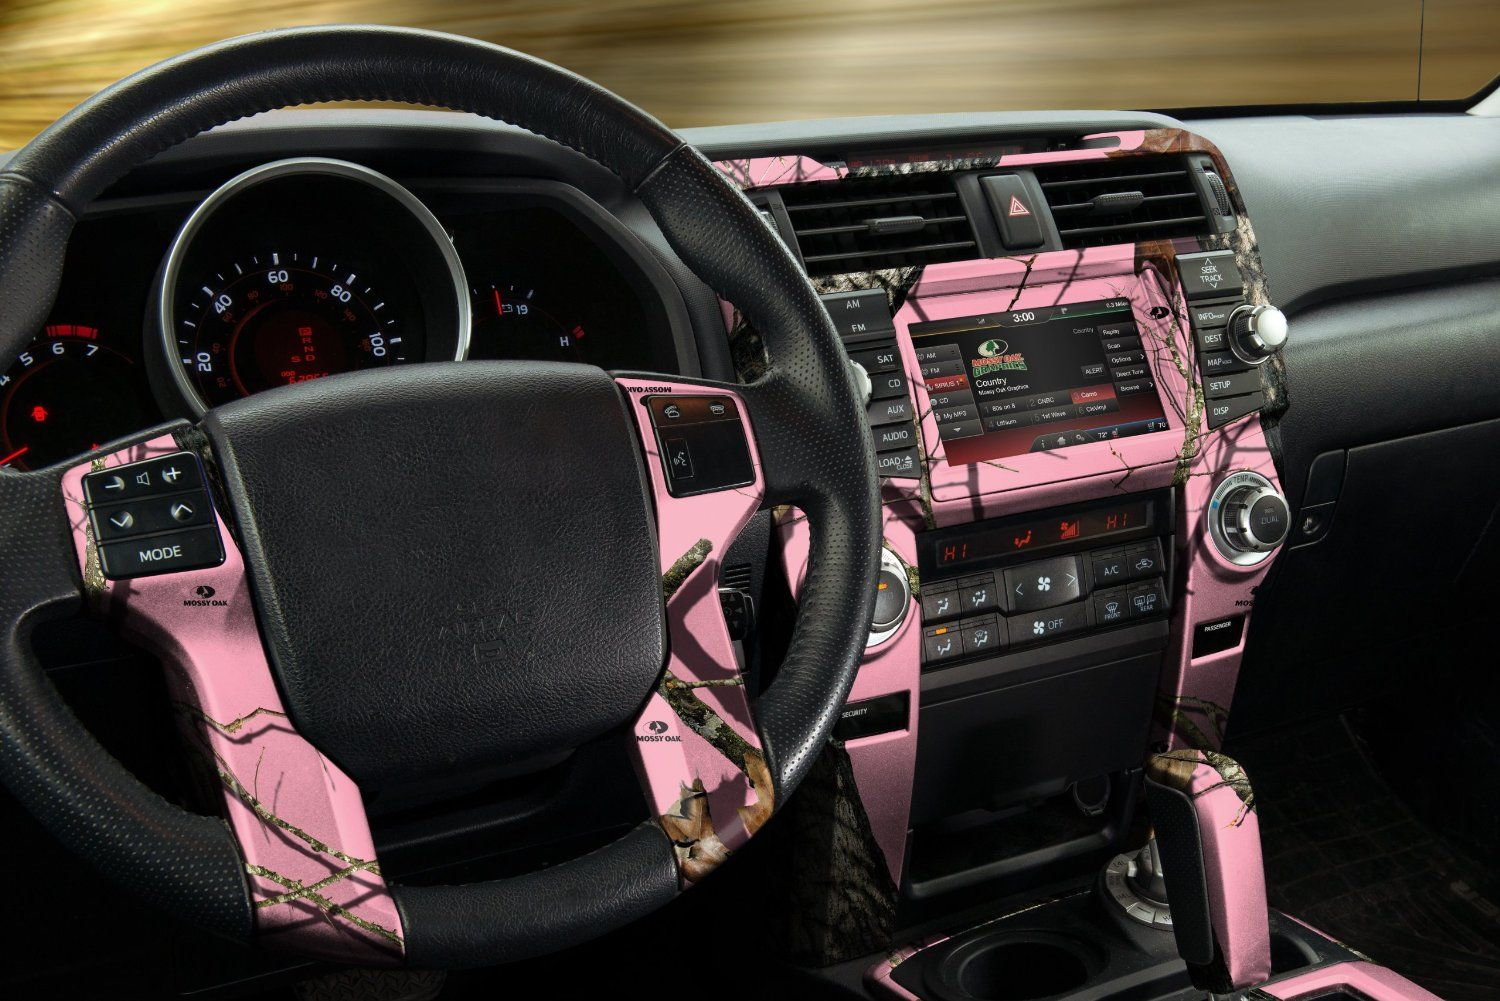 Auto Interior Skin   Camo Dash Kit   Break Up Pink   Wife Truck Idea